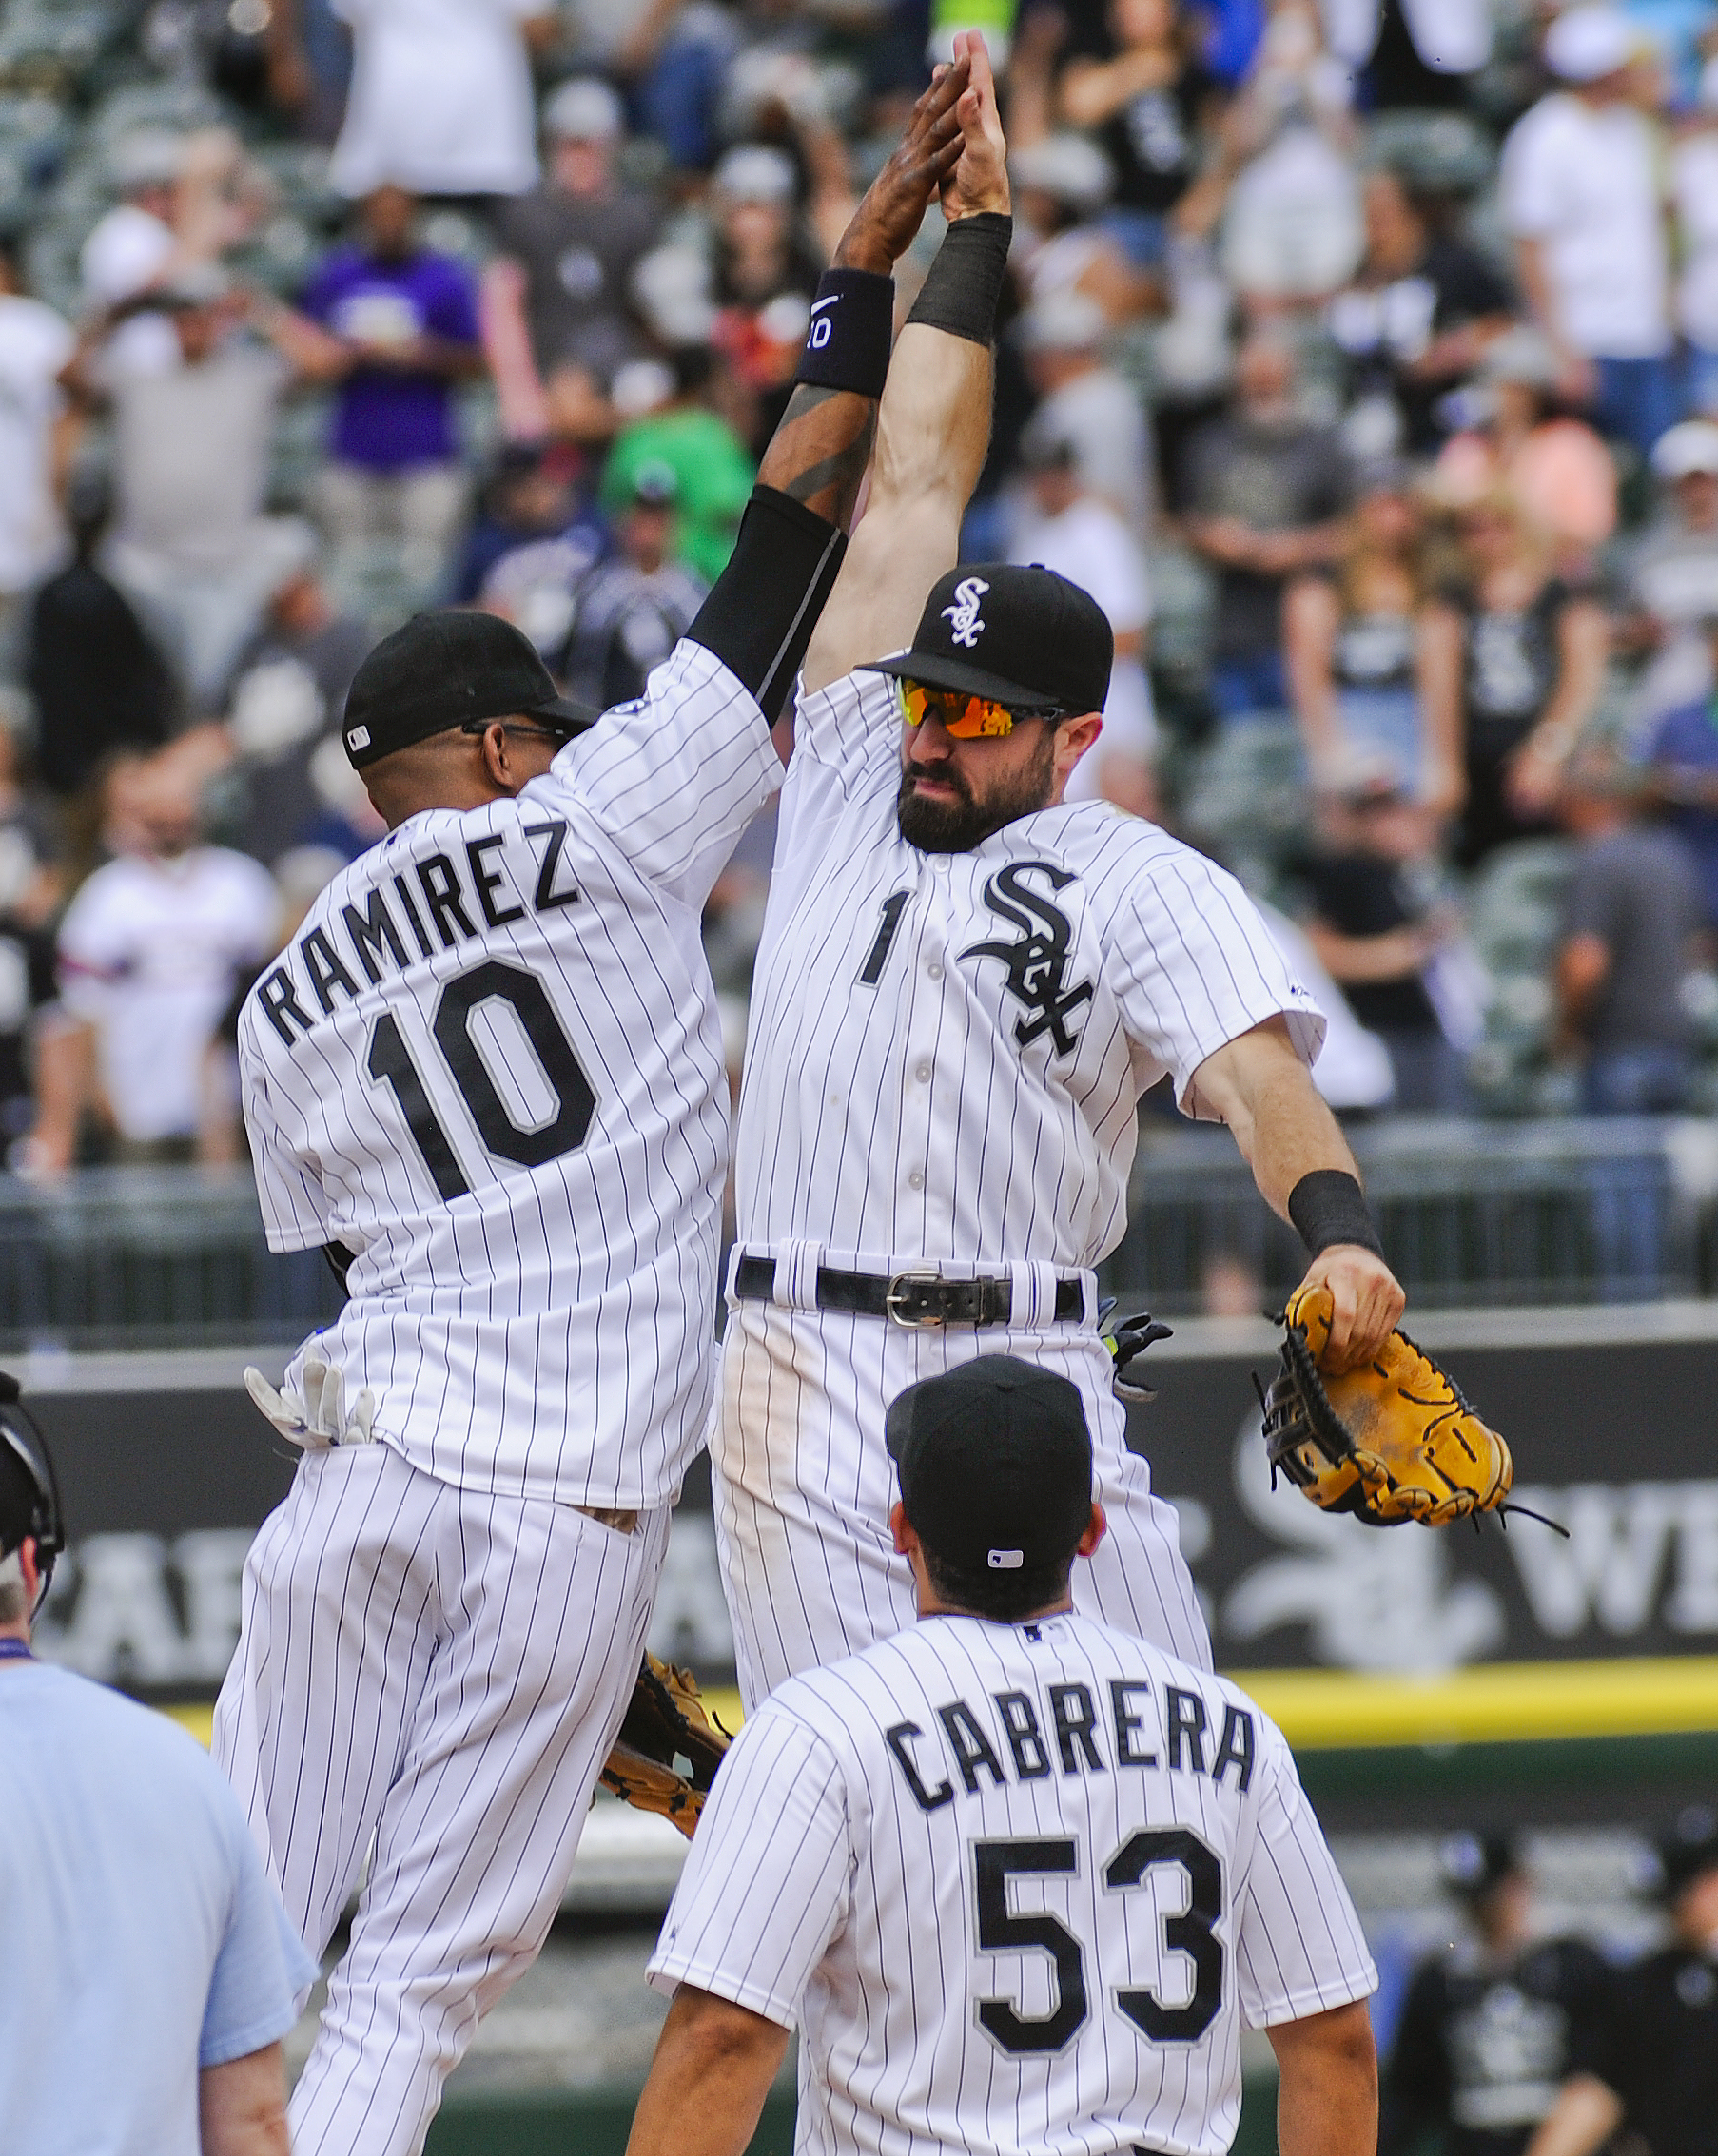 Chicago White Sox's Alexei Ramirez and Chicago White Sox's Adam Eaton (1) high-five as Chicago White Sox's Melky Cabrera (53) watches after they defeated the Texas Rangers 3-2 in a baseball game on Saturday, June 20, 2015, in Chicago. (AP Photo/Matt Marto